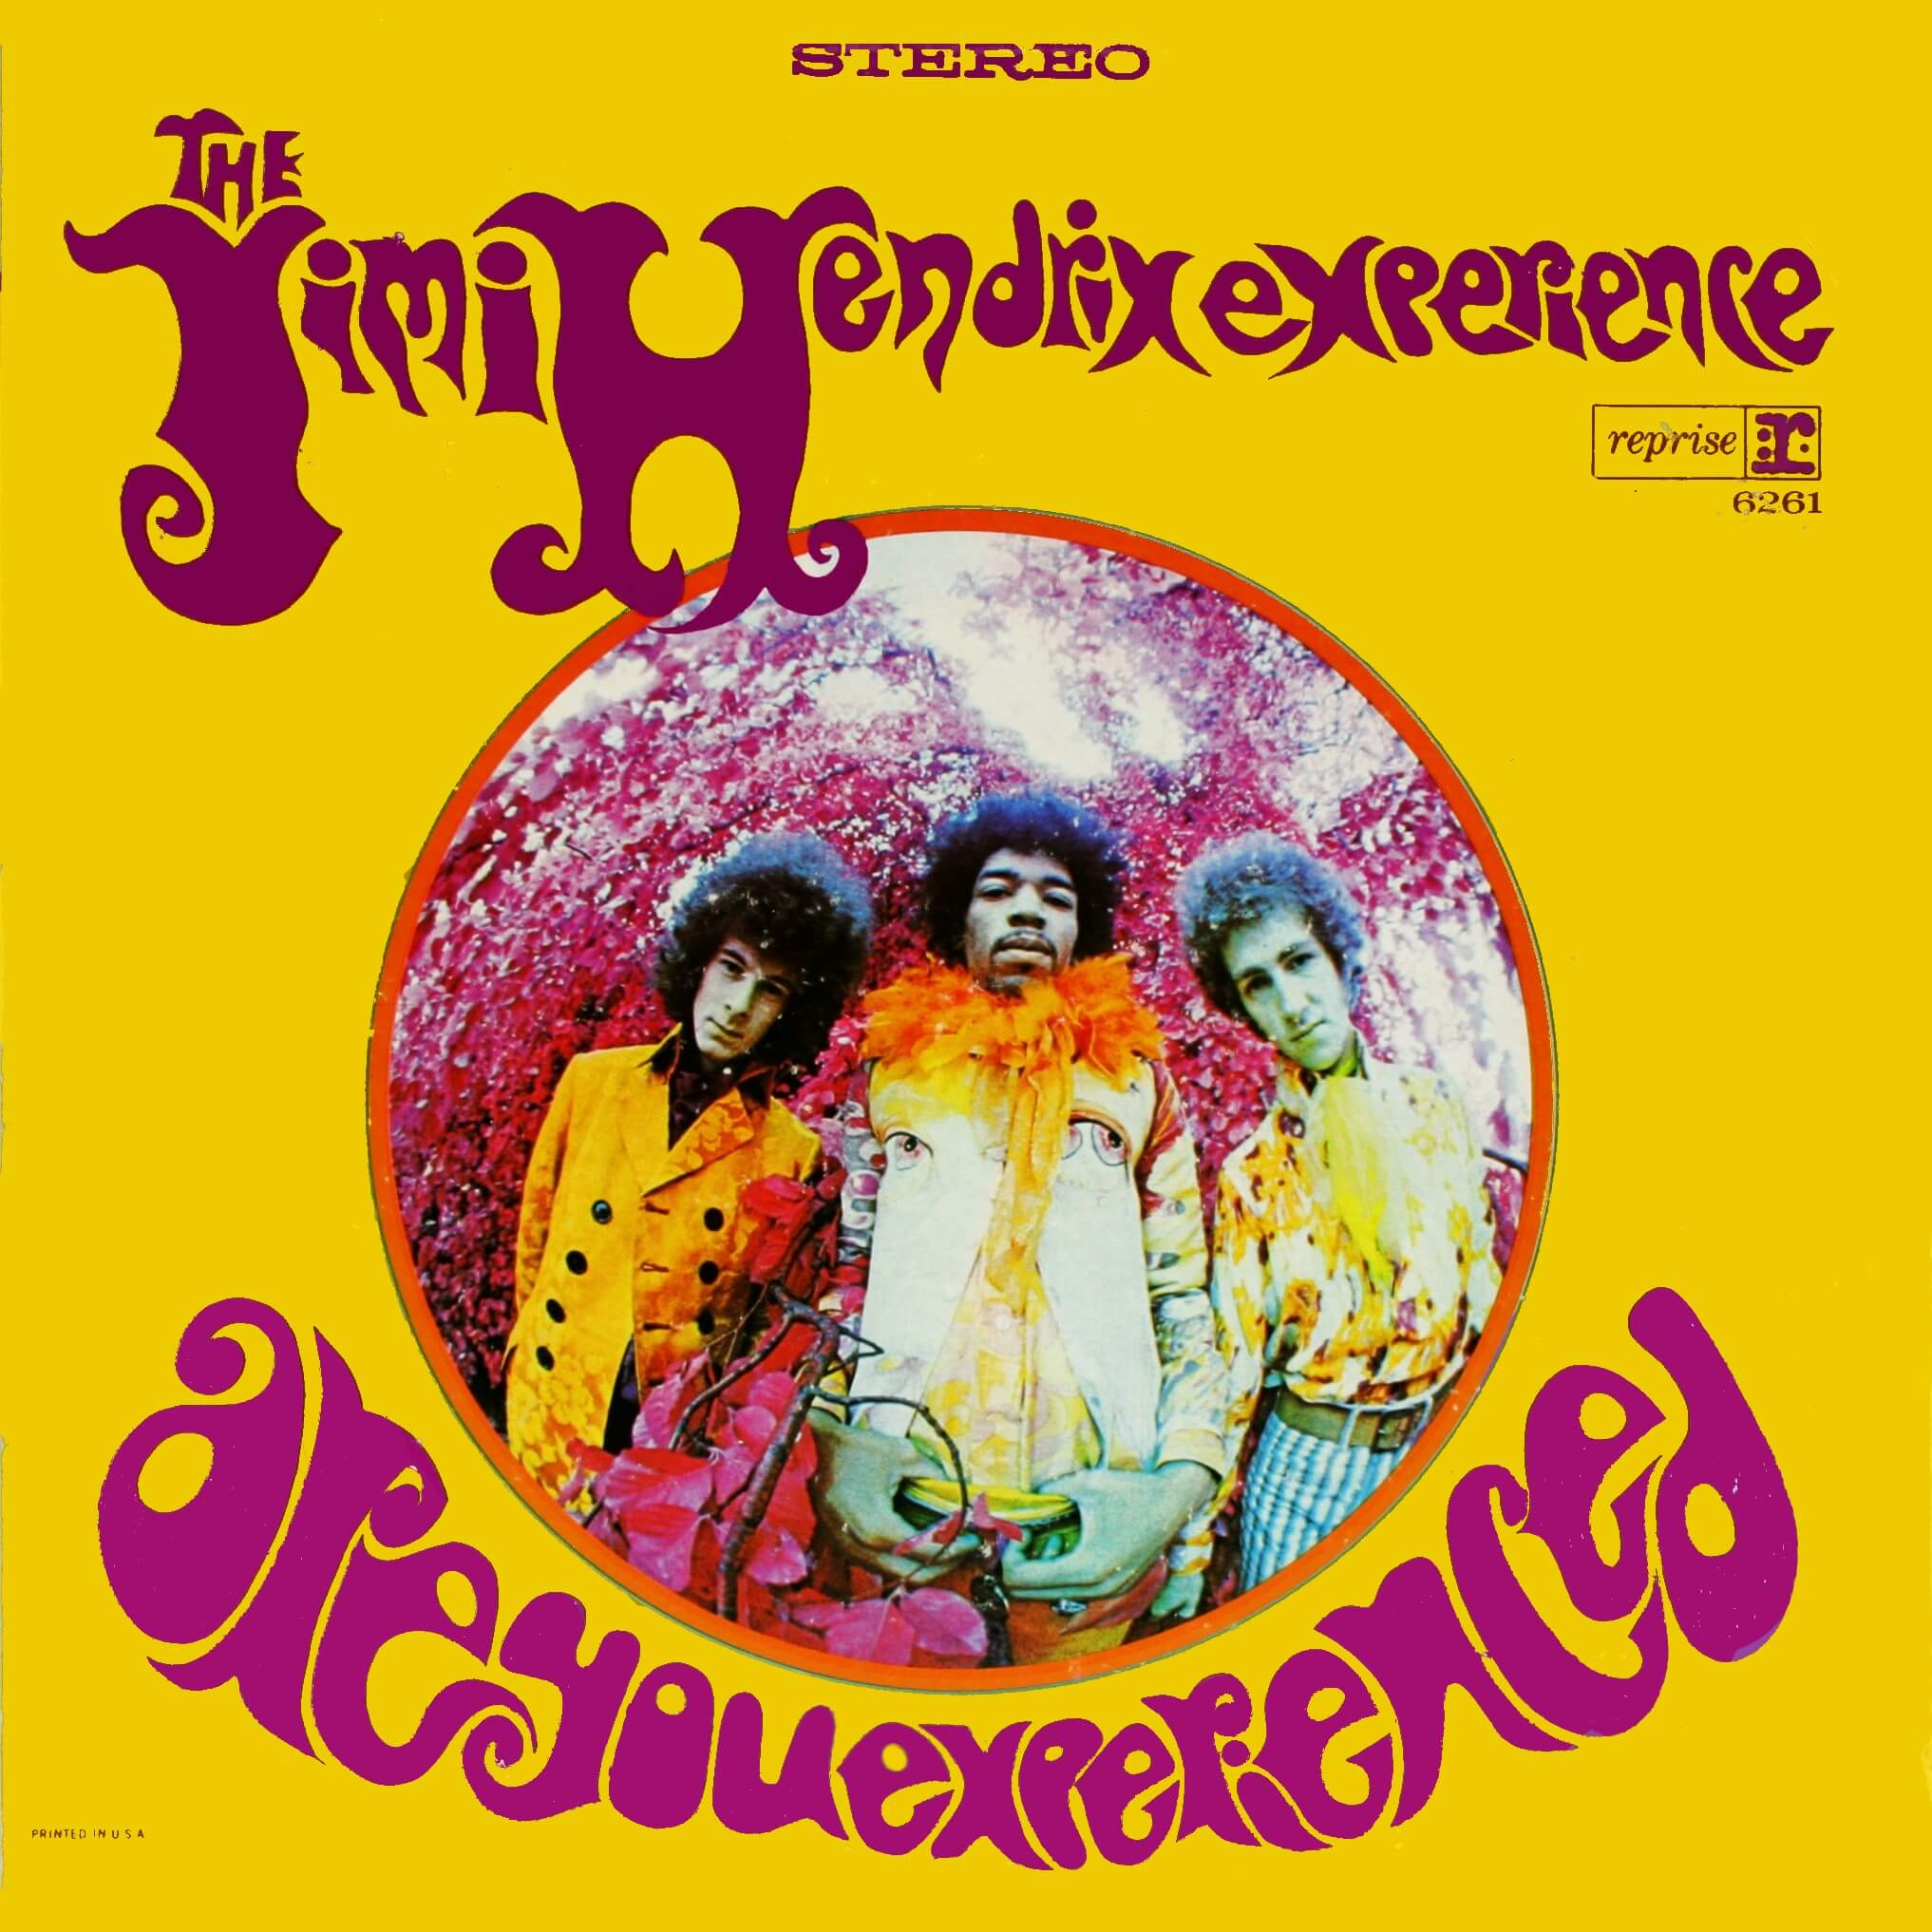 Jimi Hendrix Experience - Are You Experienced album